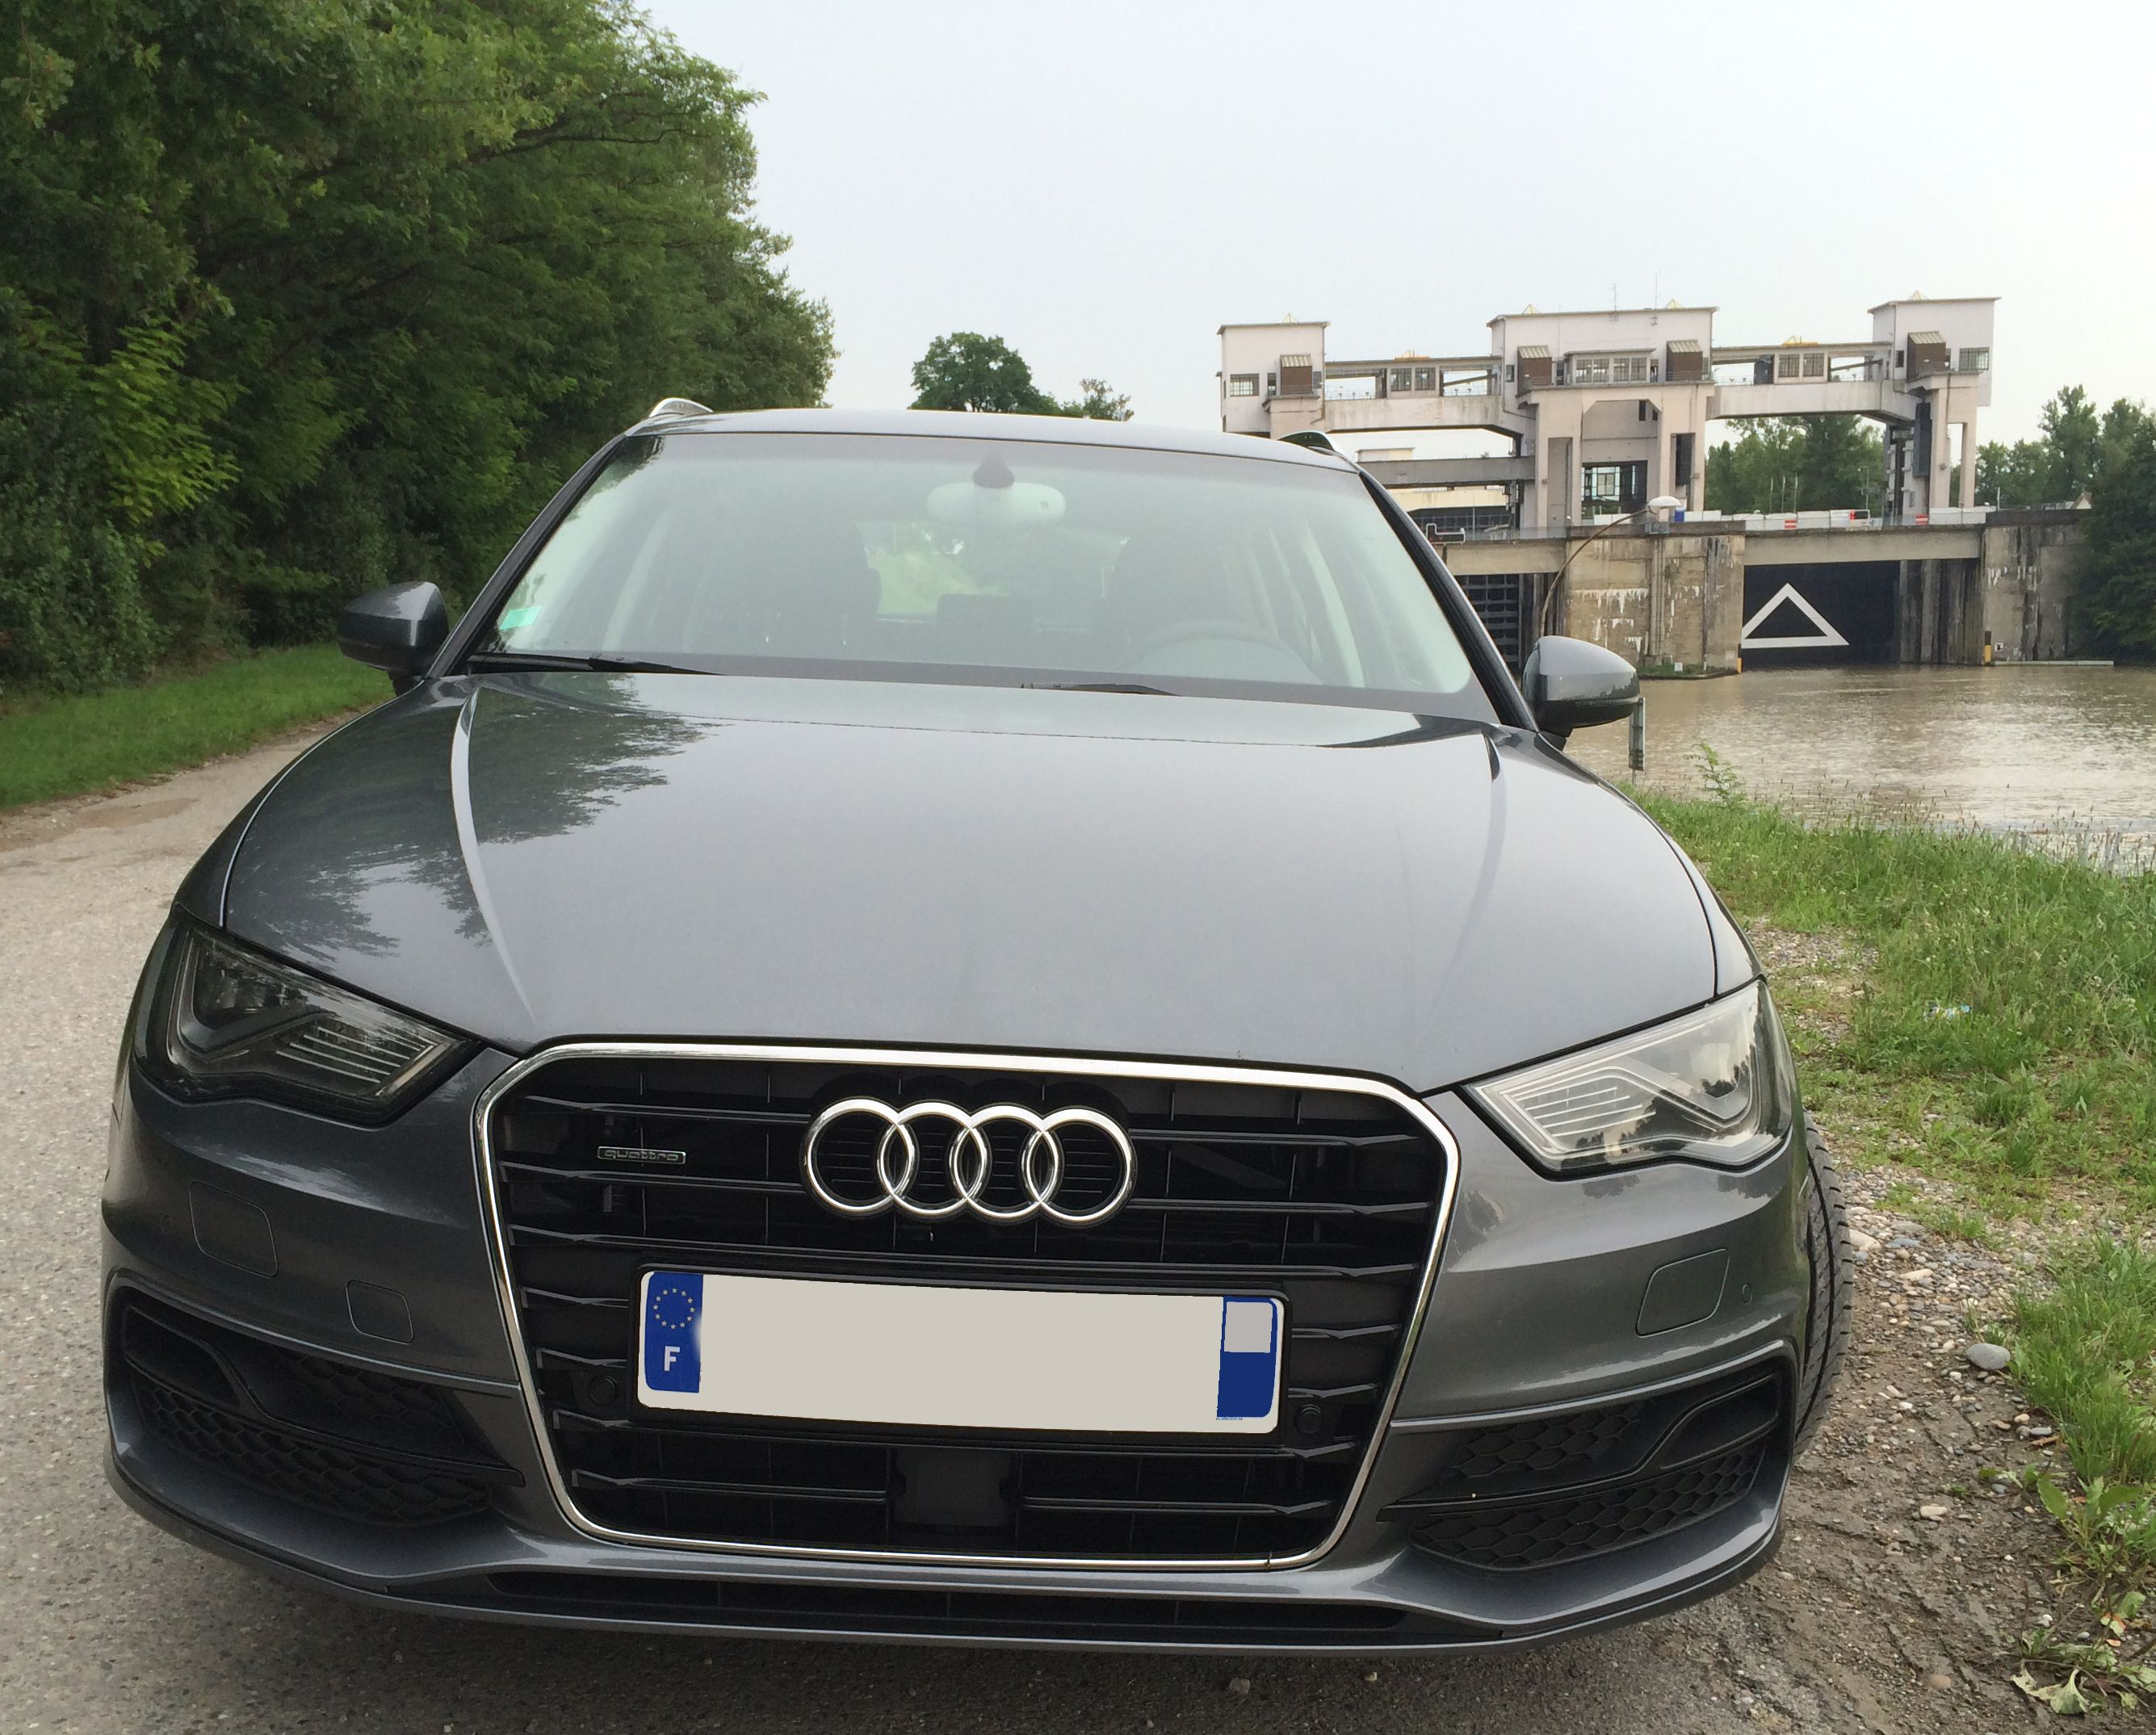 Audi A3 Sportback 8v Tdi 150 Quattro Ambition Luxe Pack S